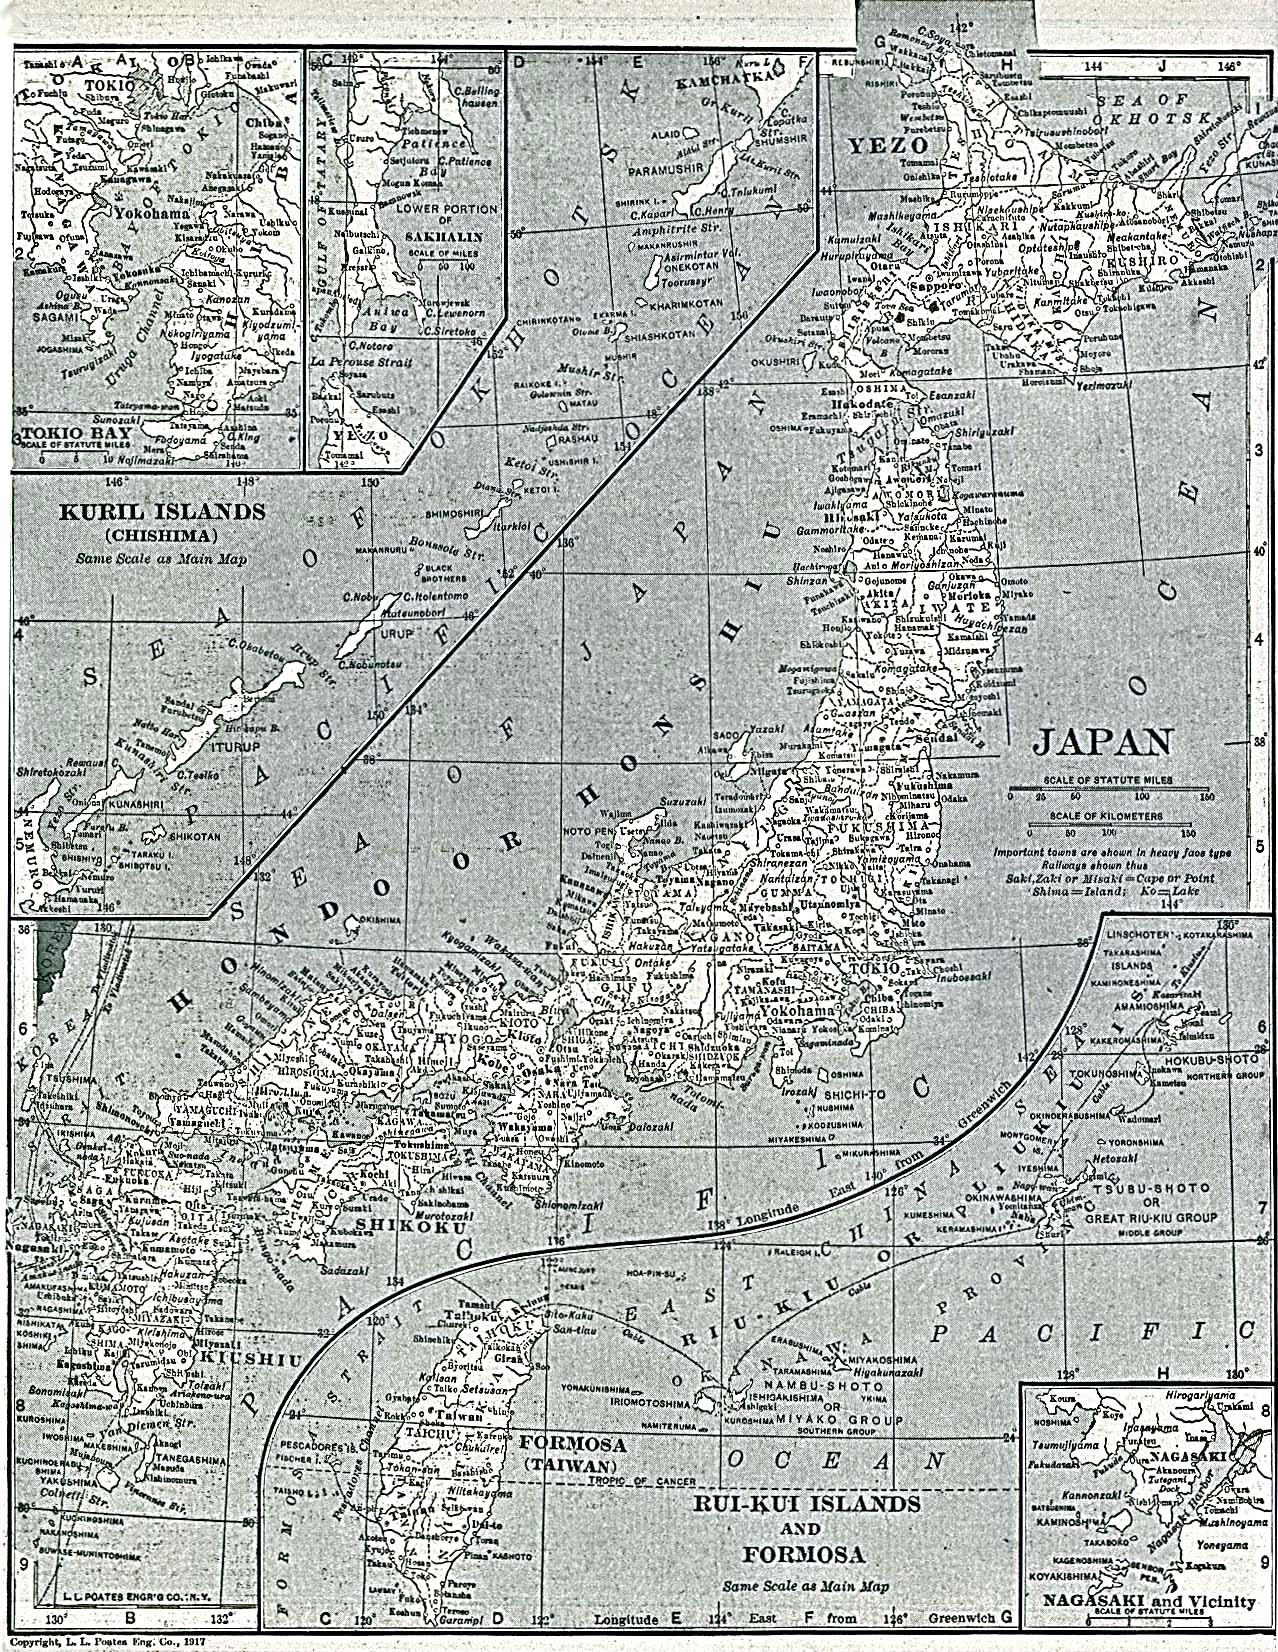 Map of the Principal Cities and Towns of Japan 1917